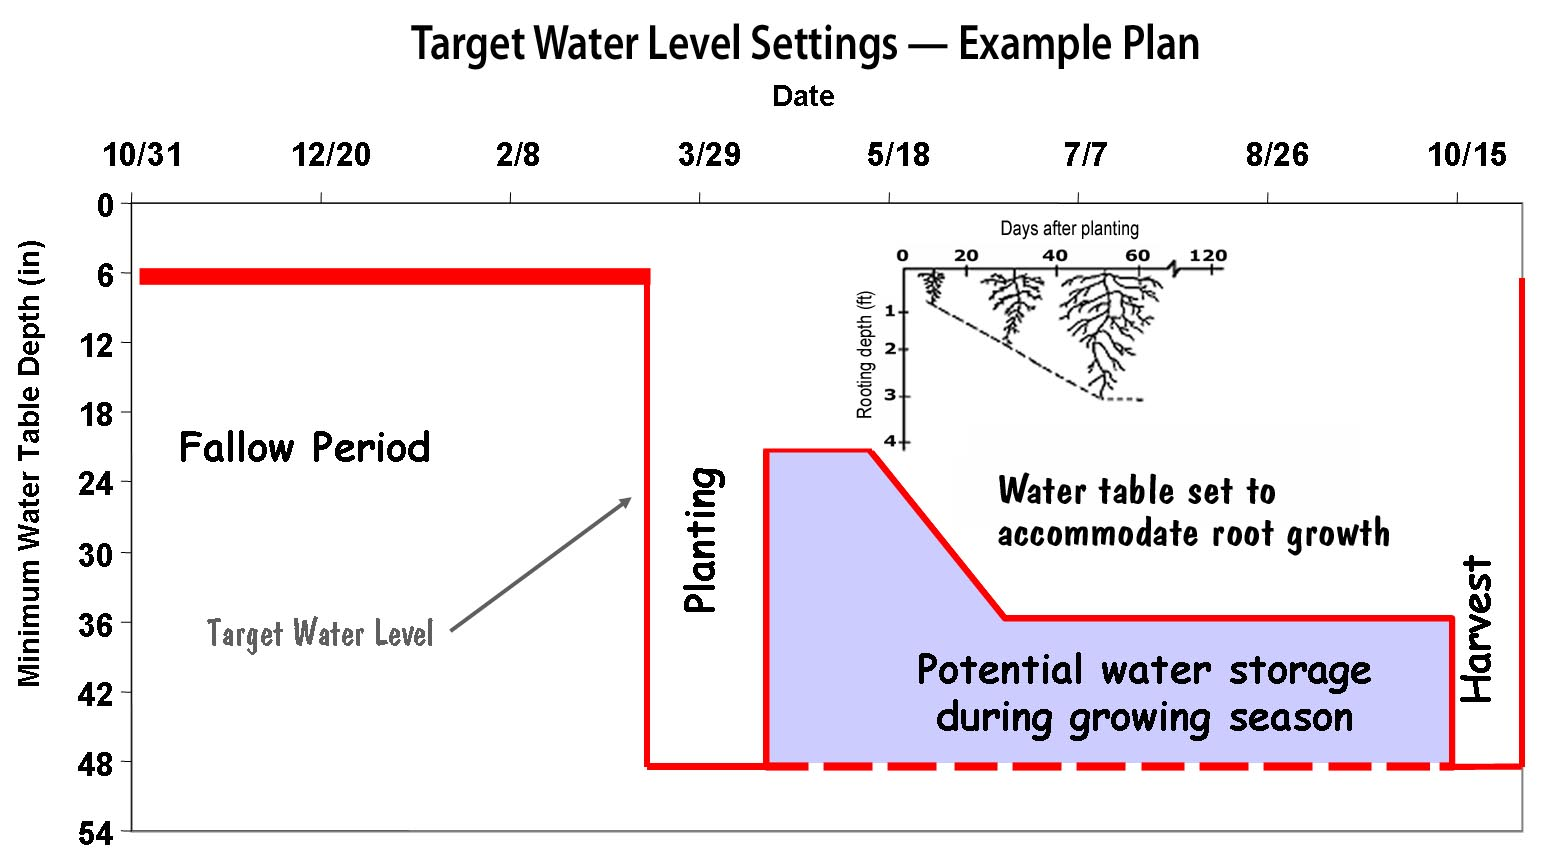 Target Water Level Settings: Example Plan